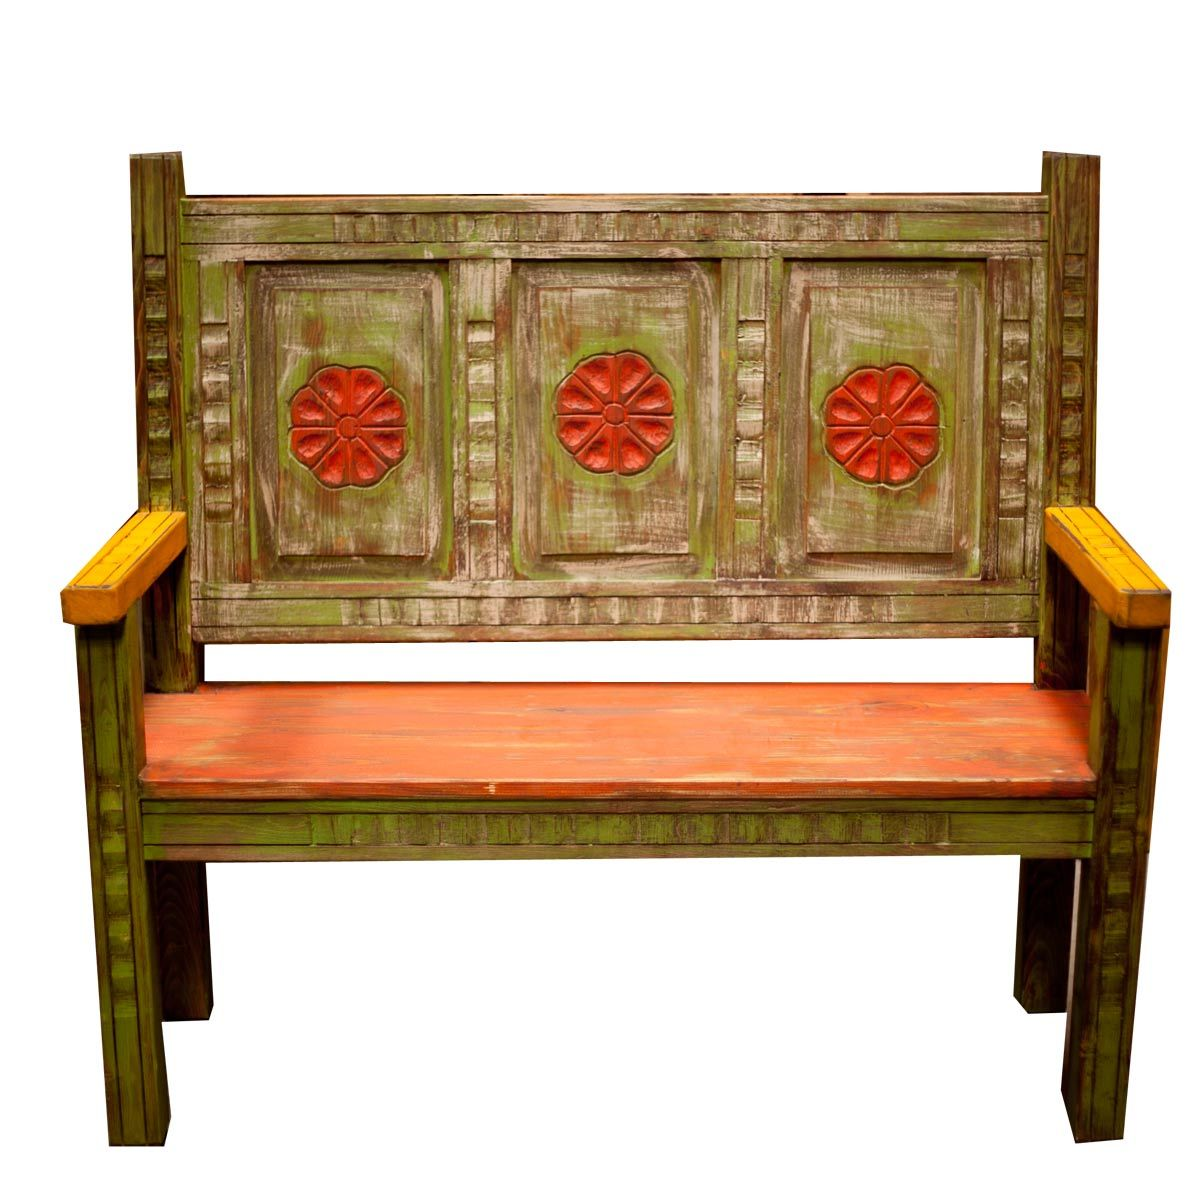 Mexican Painted Furniture Archives - Moreno's Rustic Furniture - Mexican Painted Furniture Archives - Moreno's Rustic Furniture